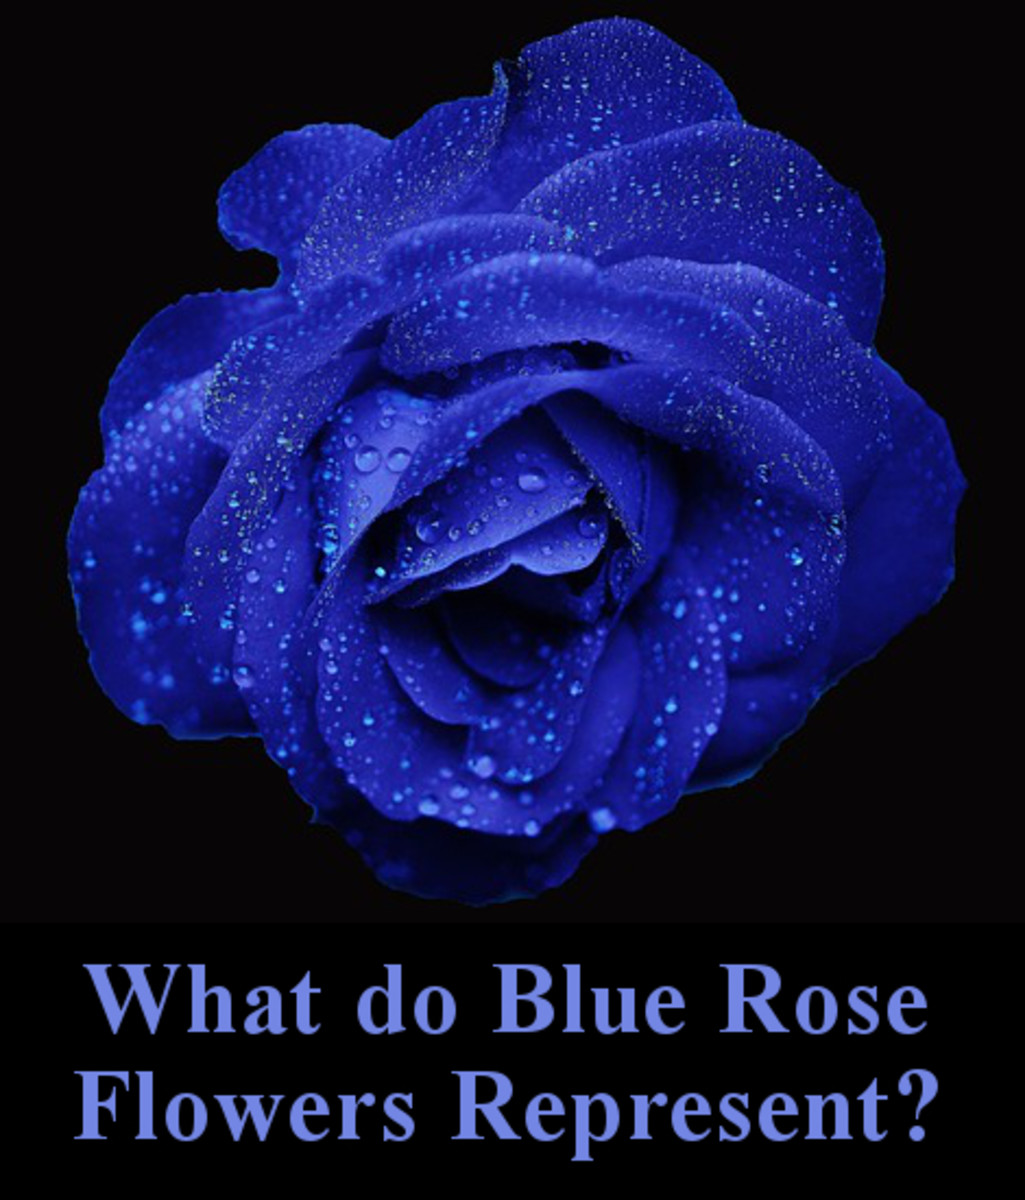 What Do Blue Rose Flowers Represent